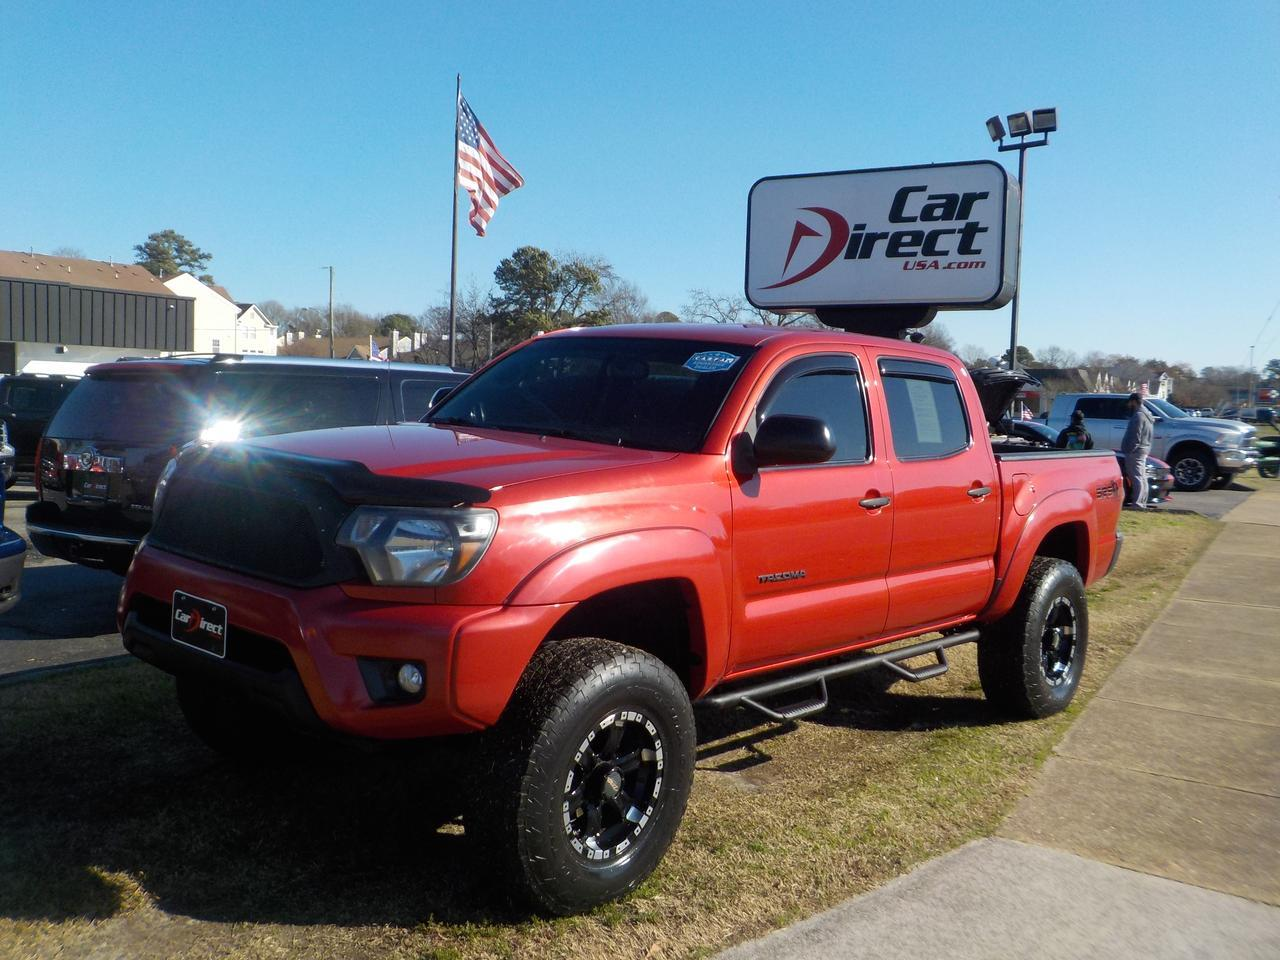 2012 TOYOTA TACOMA PRERUNNER SR5 DOUBLE CAB RWD, LIFTED, STEP BARS, TOW PACKAGE, BLUETOOTH, CUSTOM MB WHEELS! Virginia Beach VA